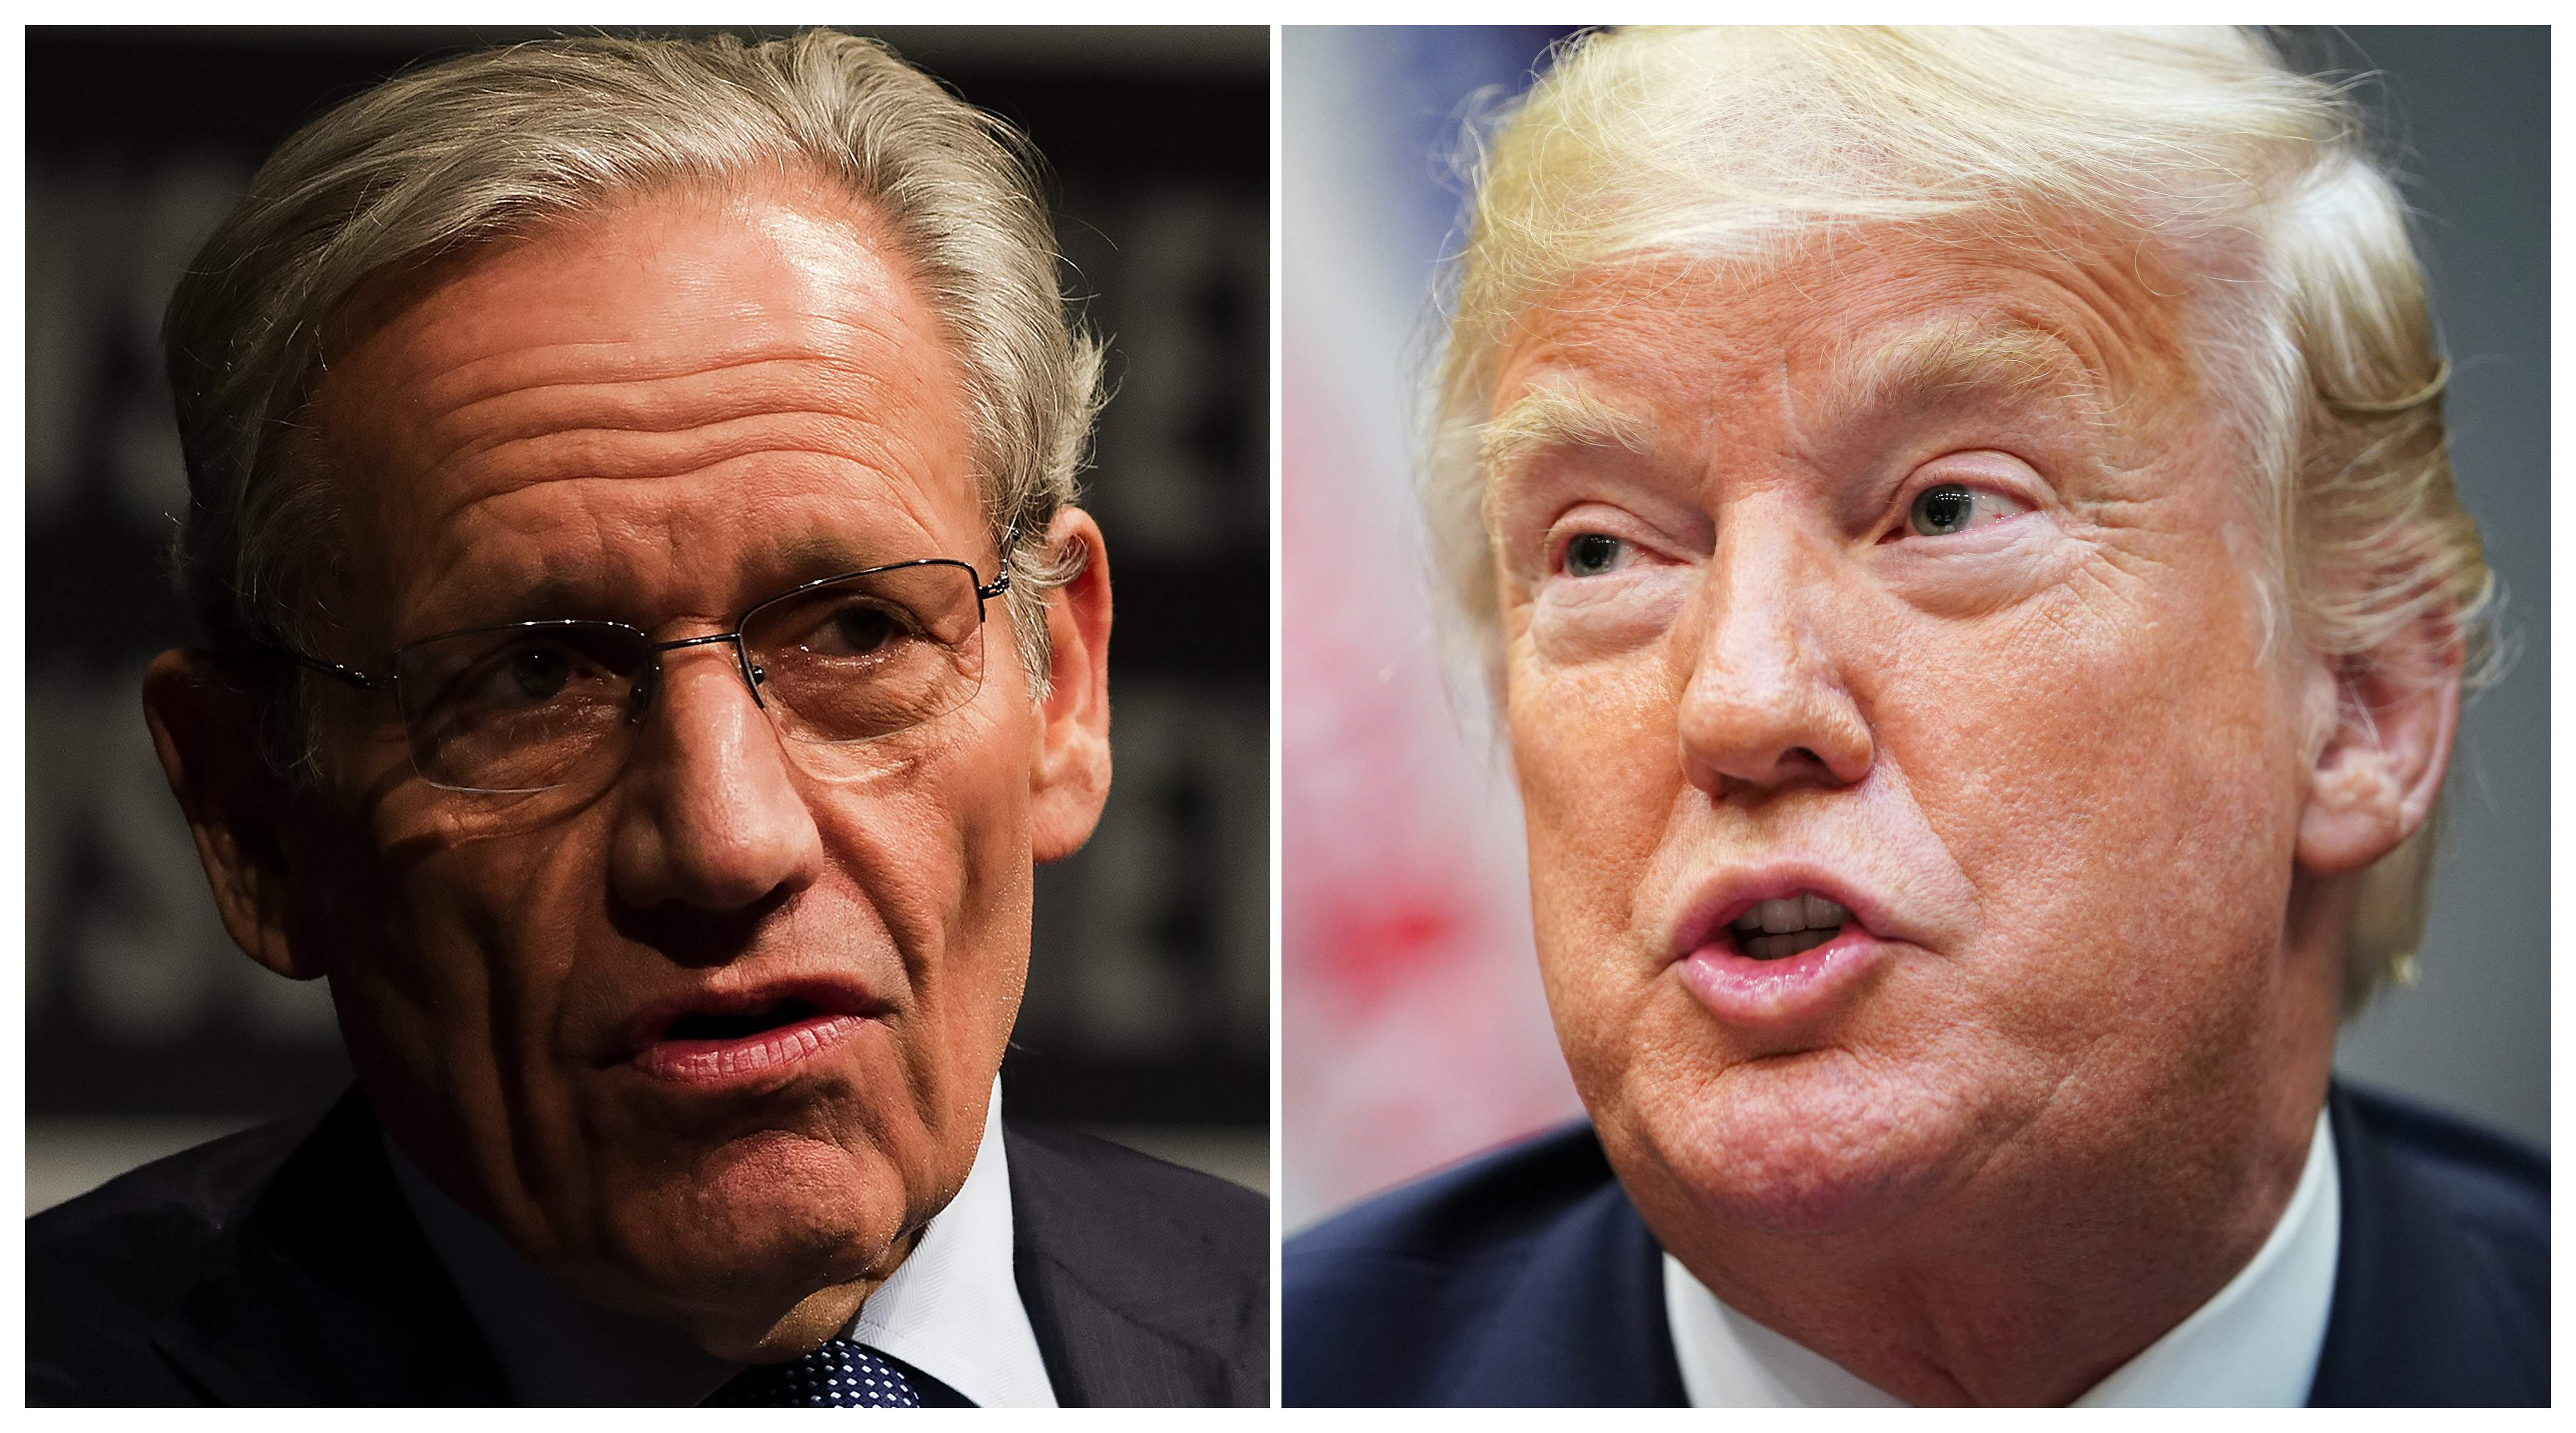 John Kelly denies calling Trump an 'idiot' as details of Bob Woodward's book trickle out